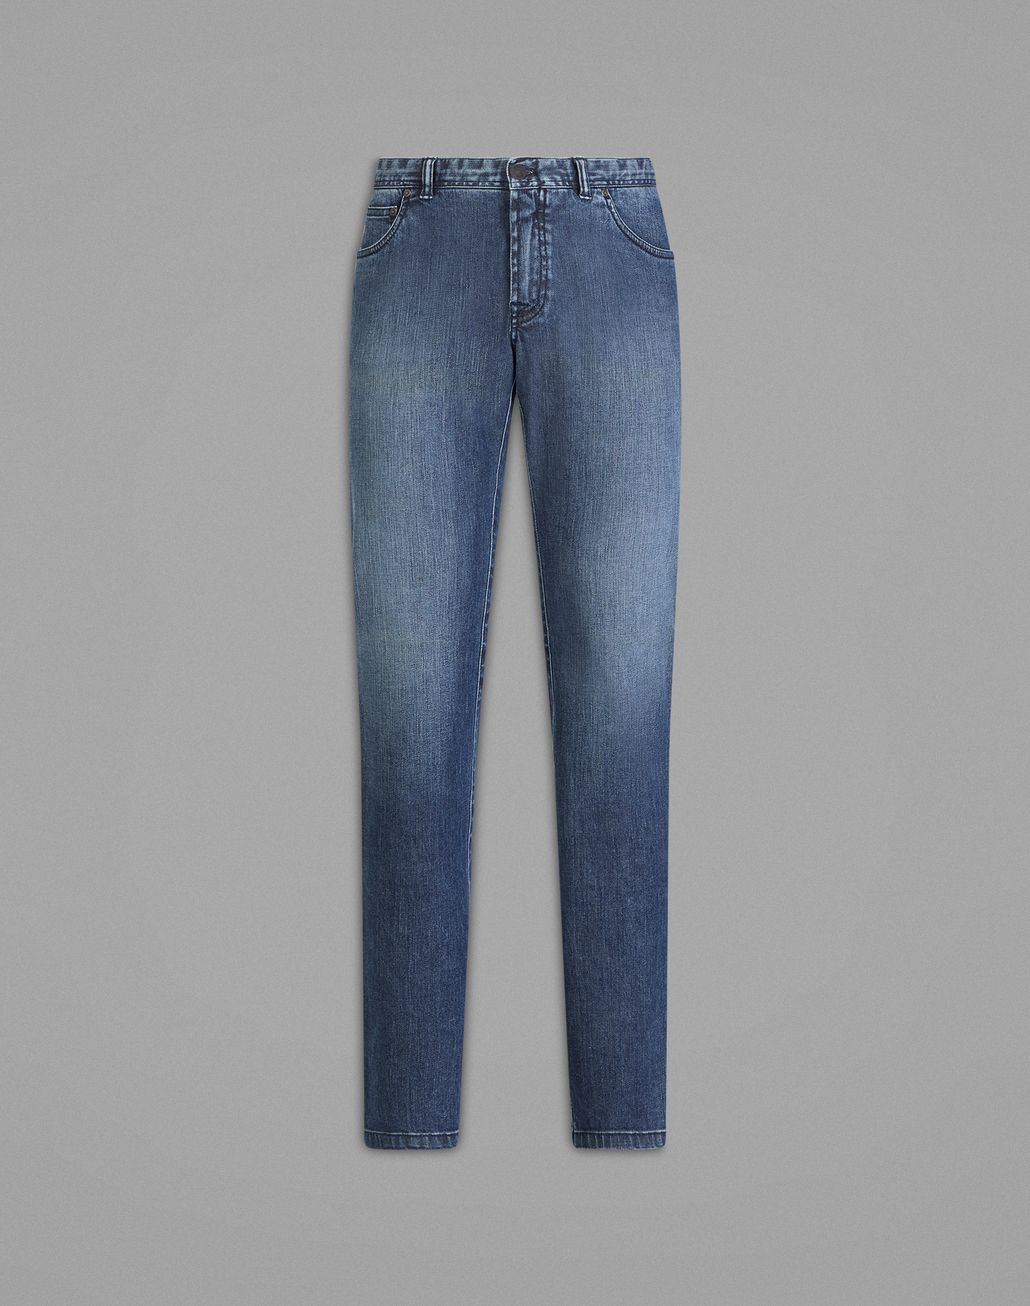 BRIONI 'Essential' Navy Blue Regular Fit Jeans Denim Man f